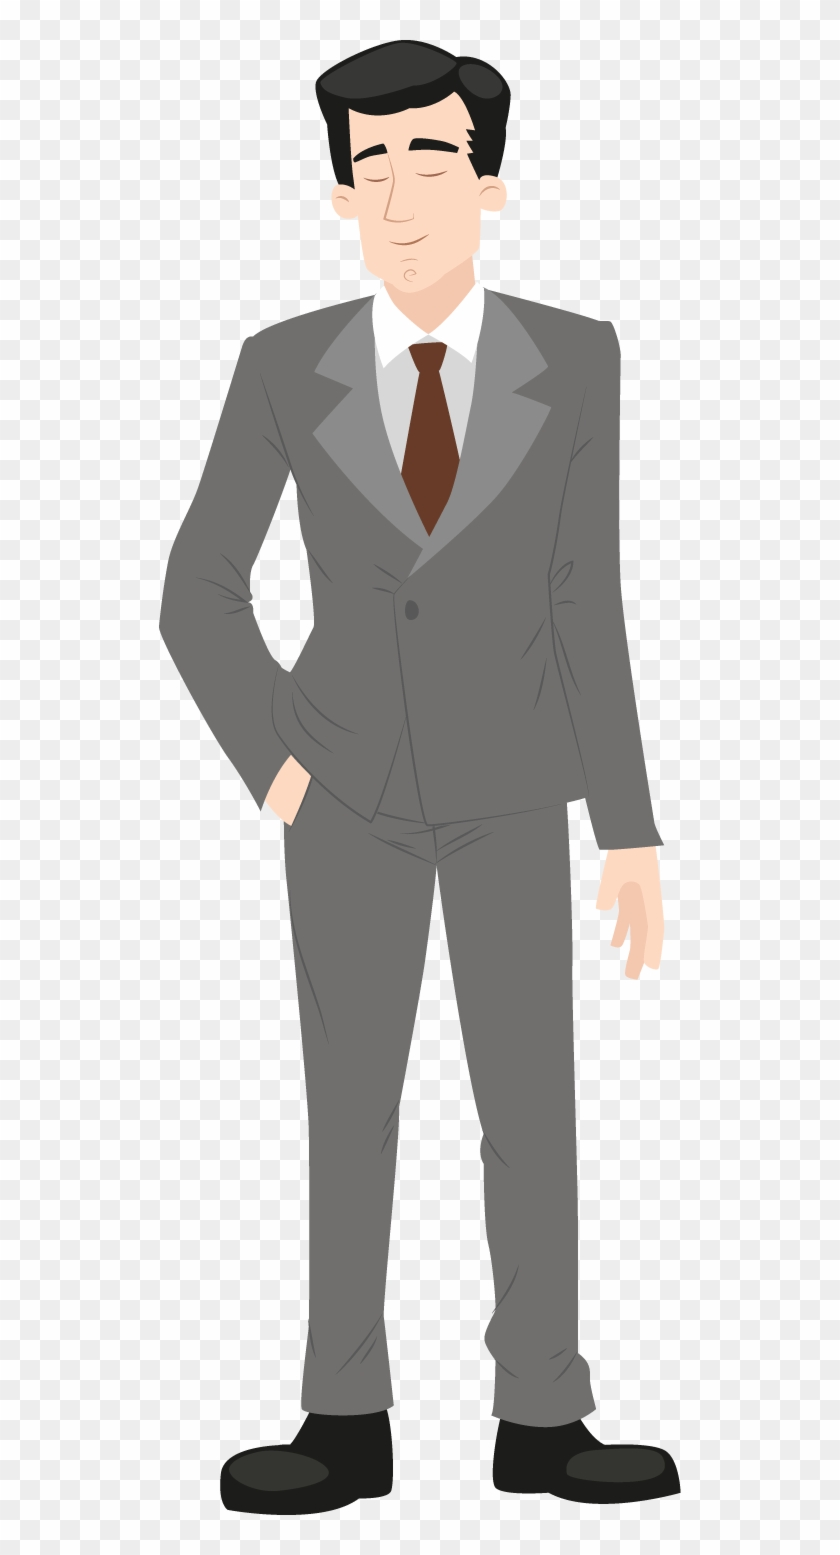 Professional clipart business formal, Professional business formal  Transparent FREE for download on WebStockReview 2020